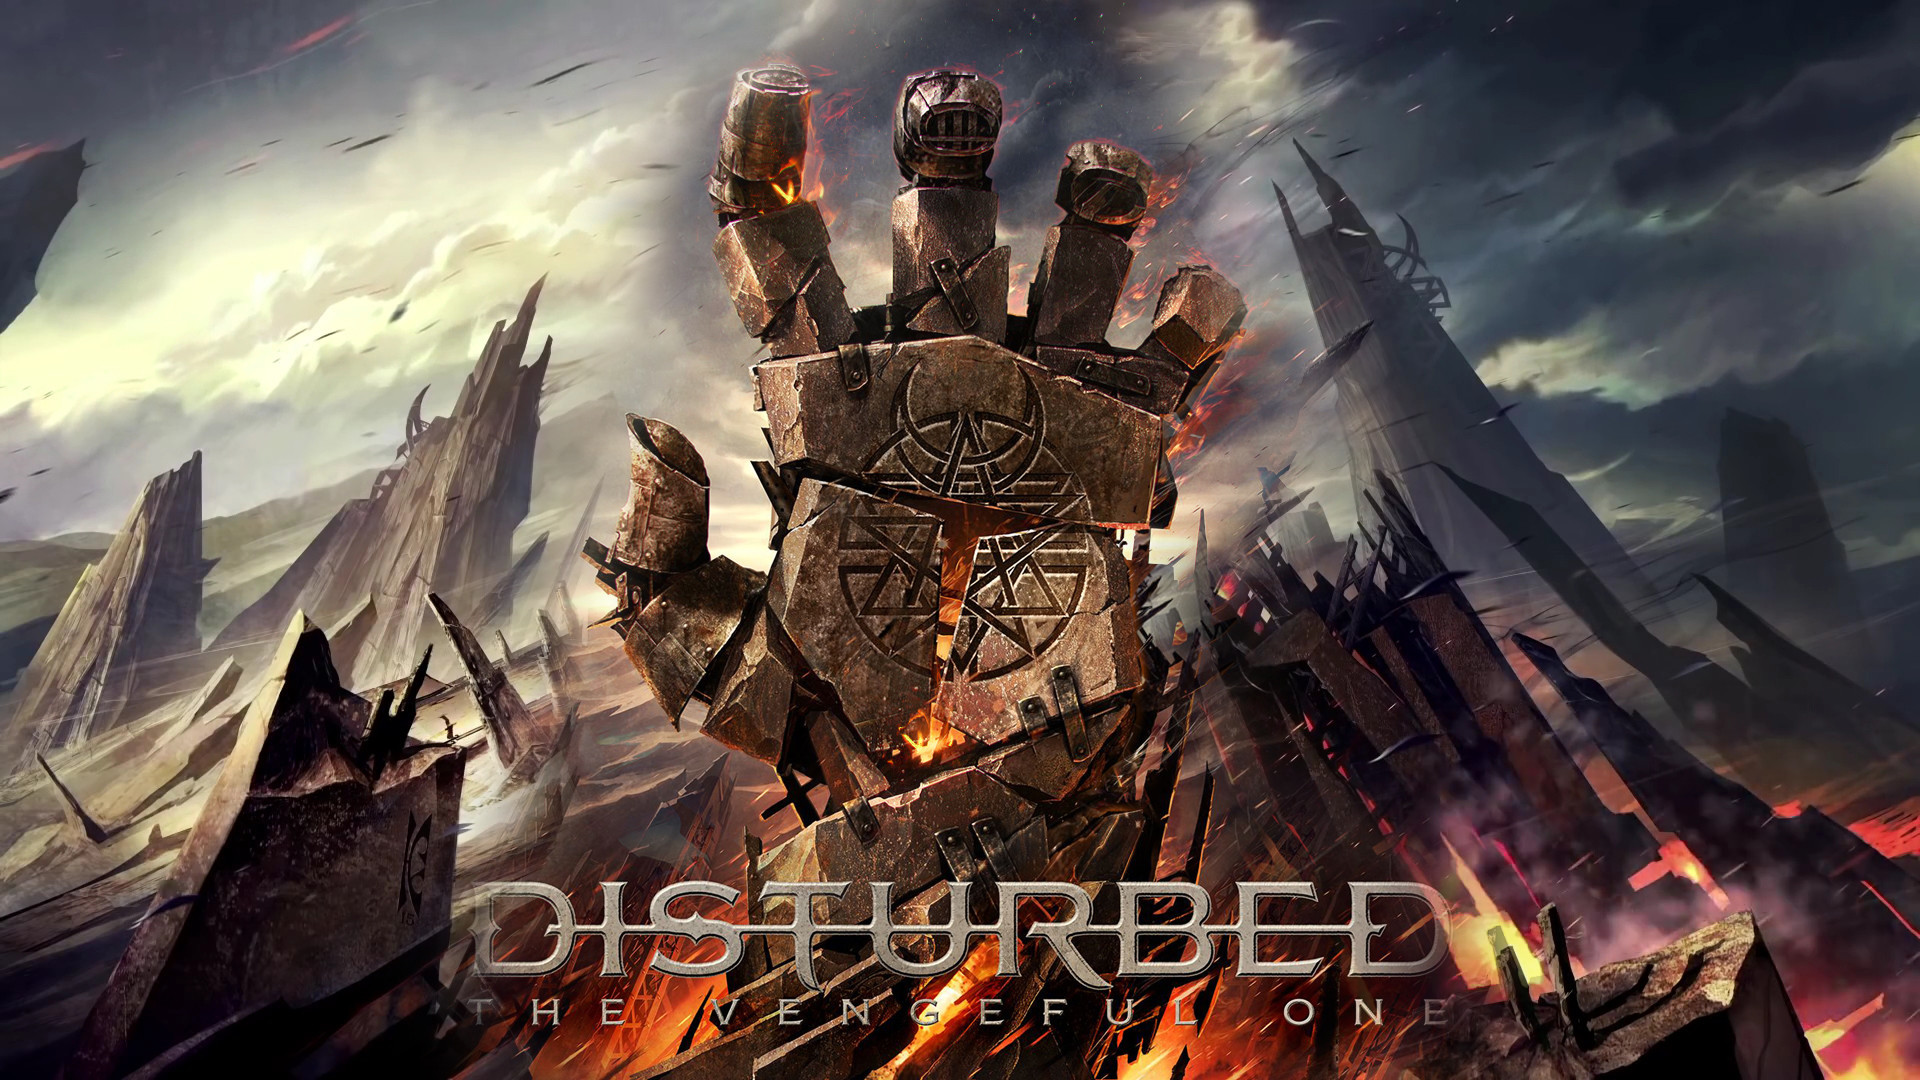 Res: 1920x1080, Disturbed